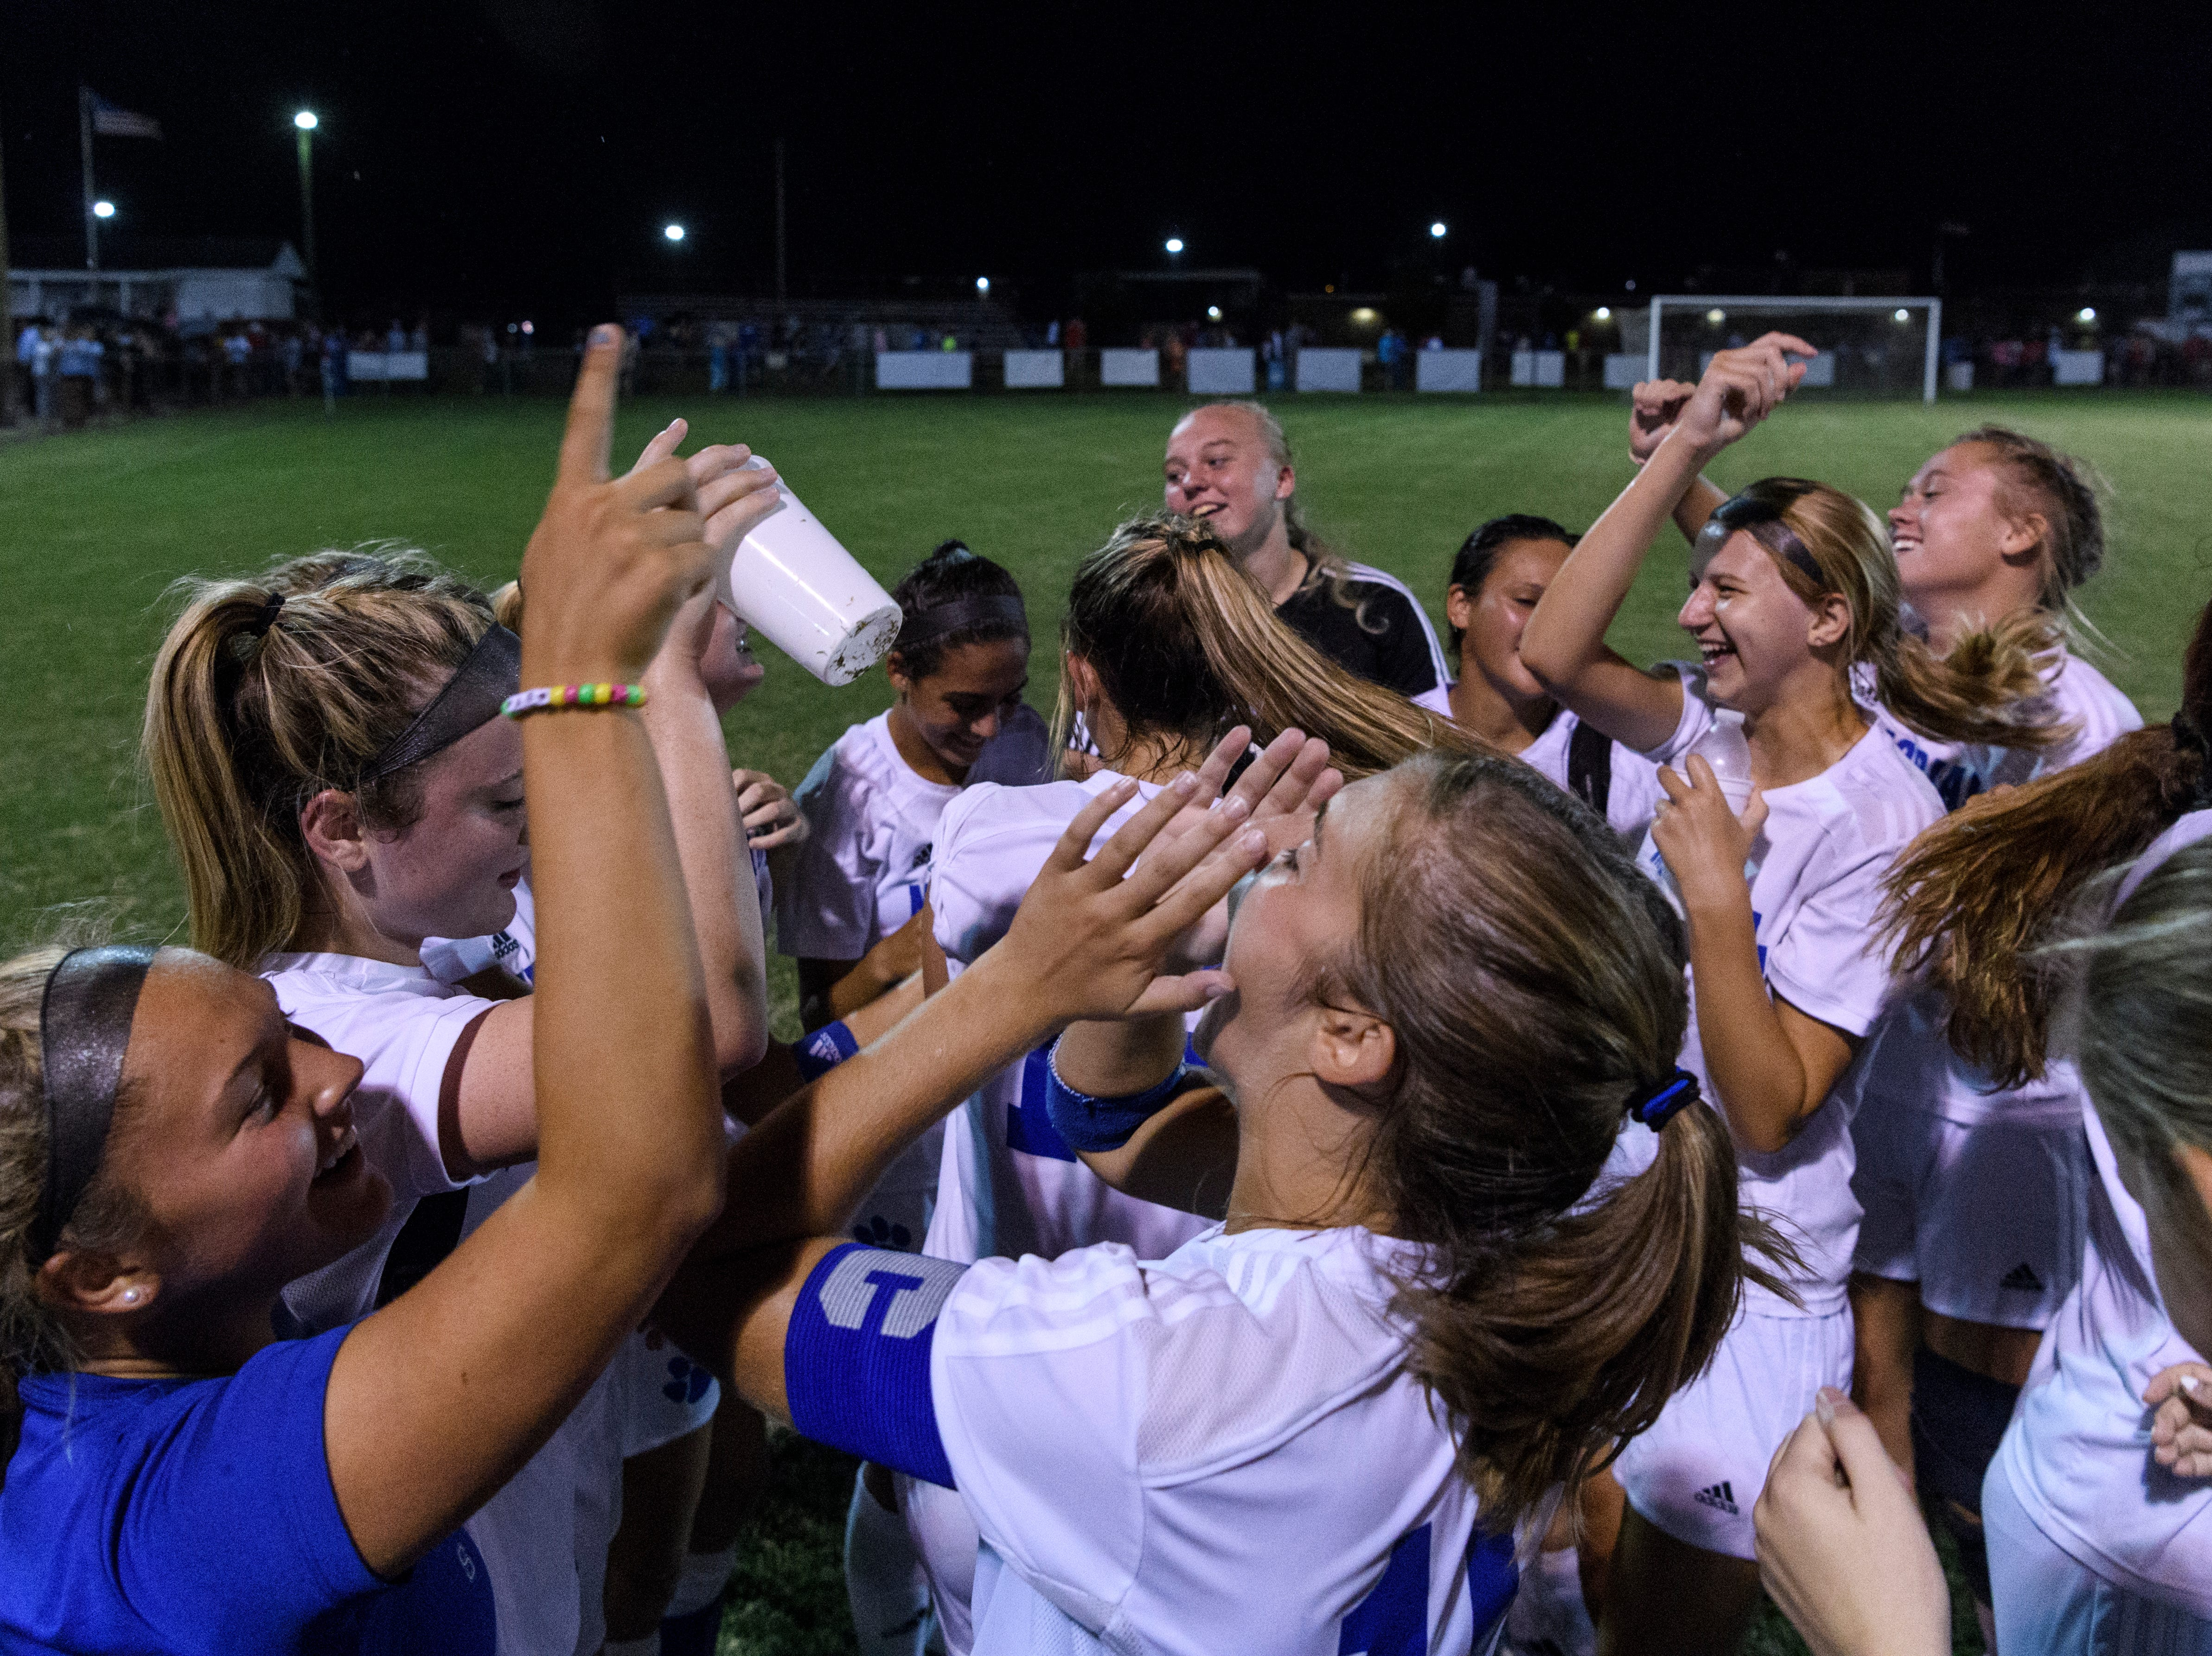 The Memorial Tigers celebrate their 4-0 victory over the Mater Dei Wildcats at the EVSC Soccer Fields in Evansville, Ind., Monday, Aug. 20, 2018.